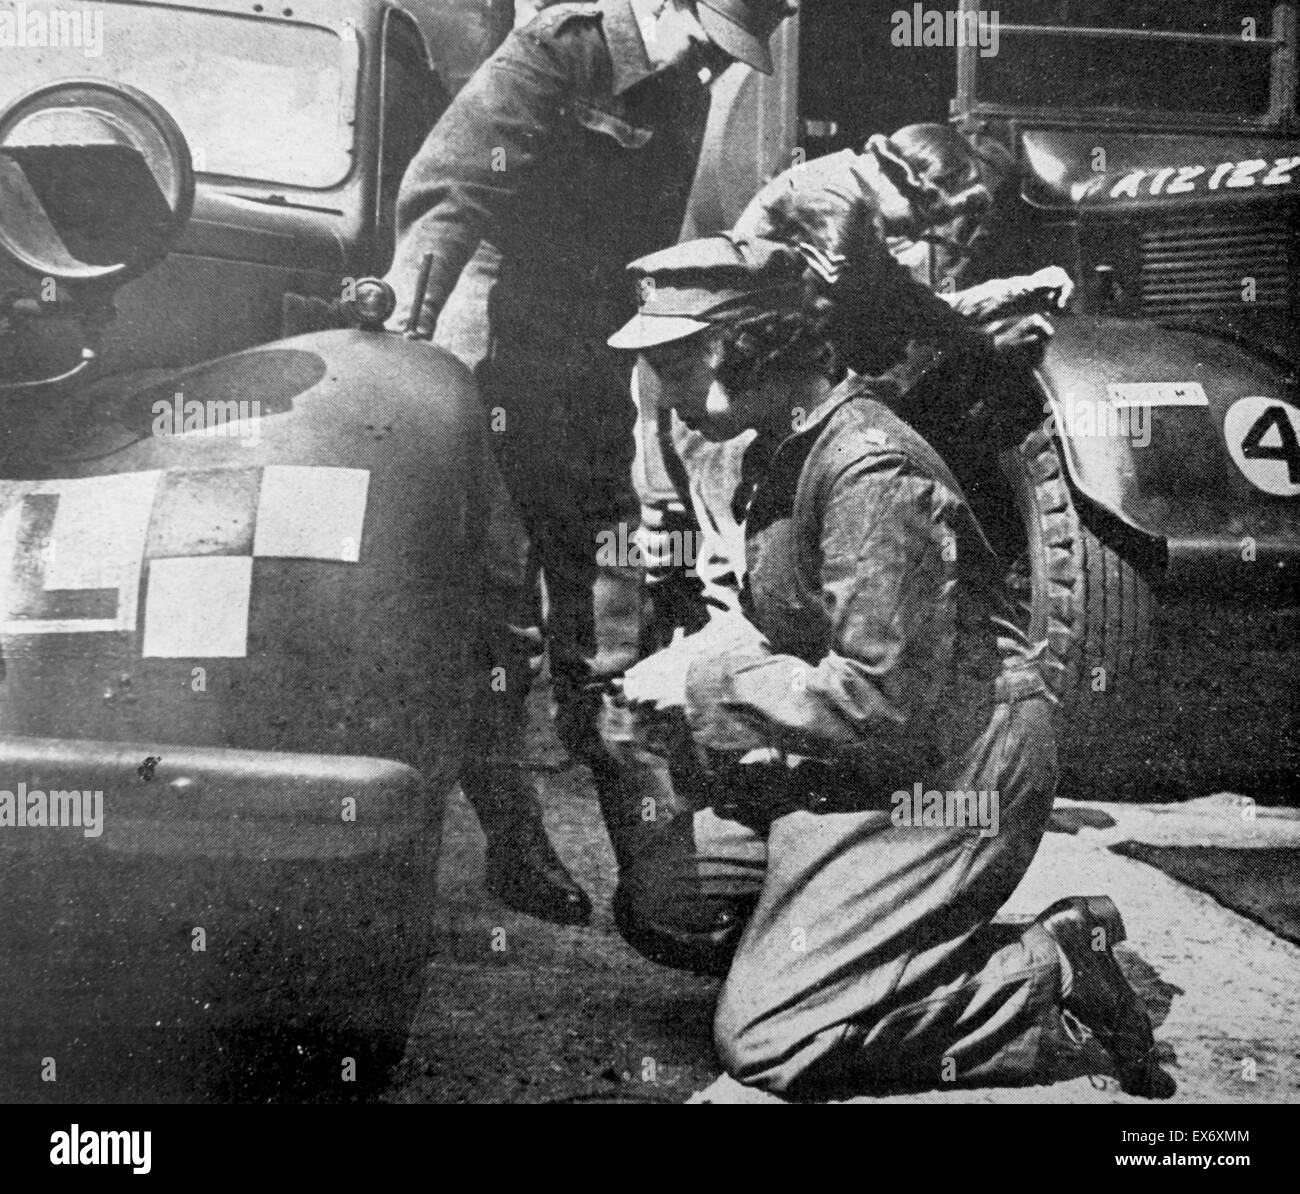 Princess (later Queen ) Elizabeth of Great Britain doing technical repair work during her World war two military - Stock Image